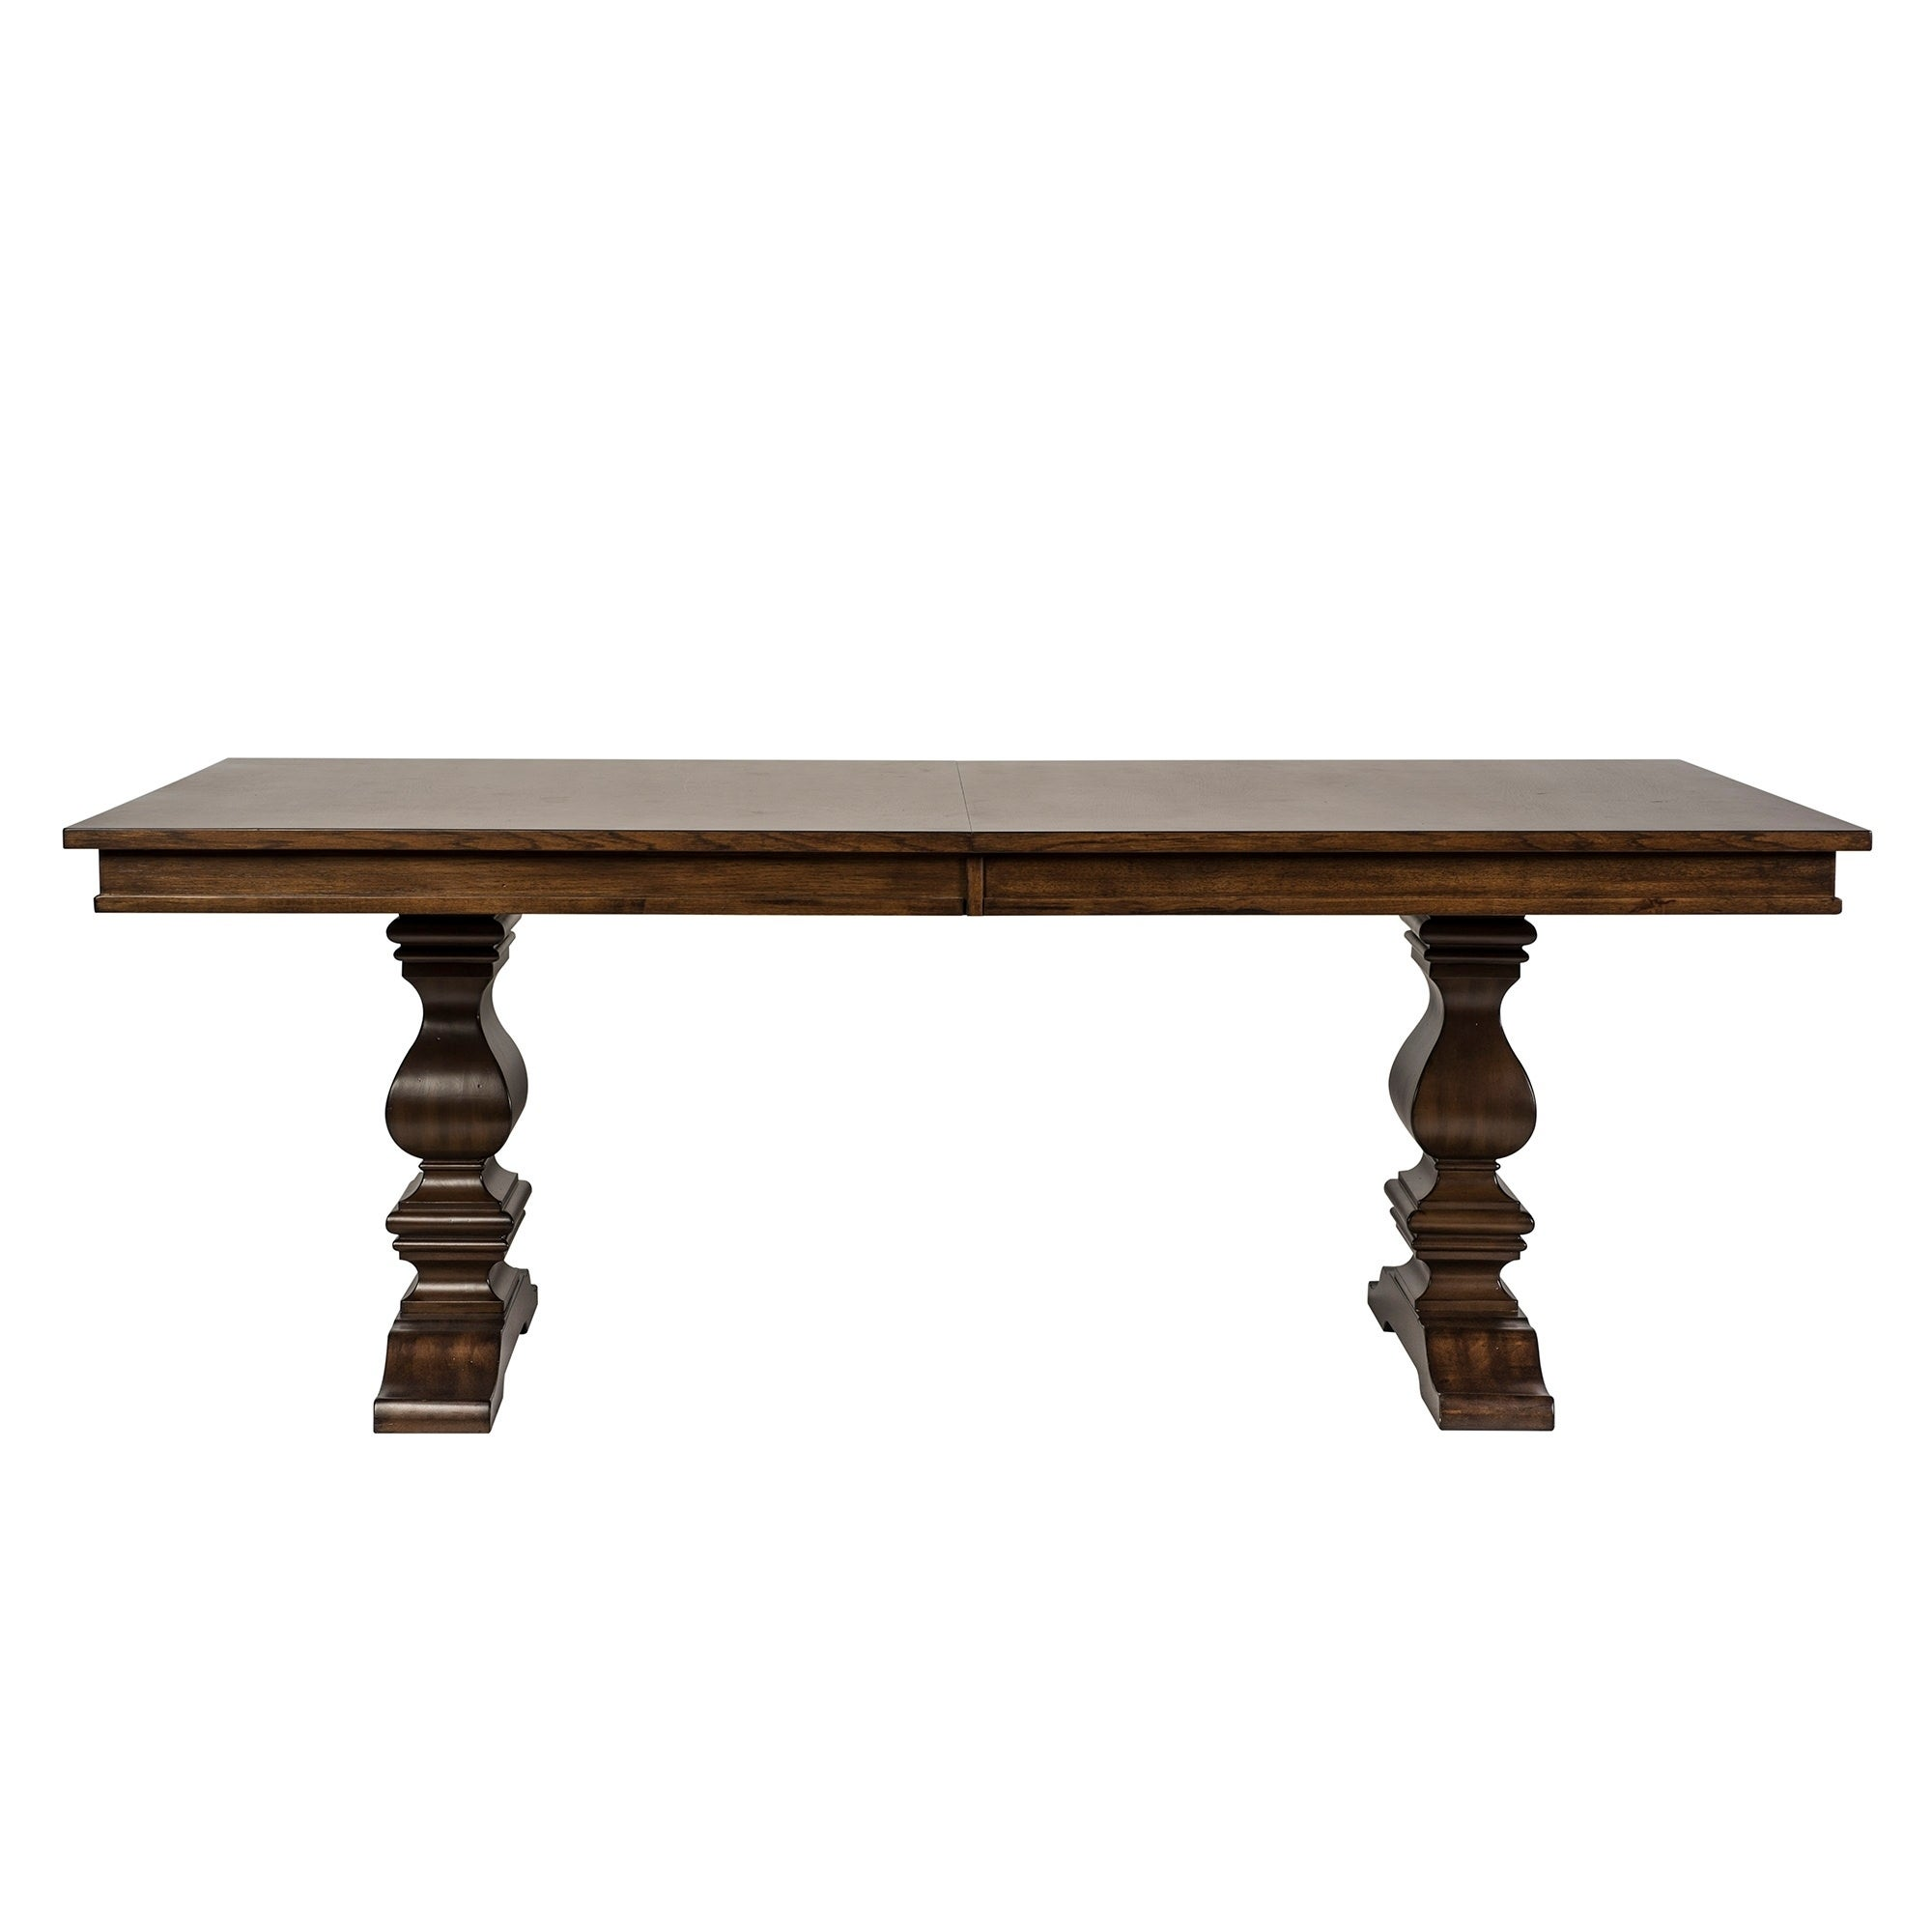 and gardiner pedestals desk trestle room classic furniture legacy dining table products x by wolf with